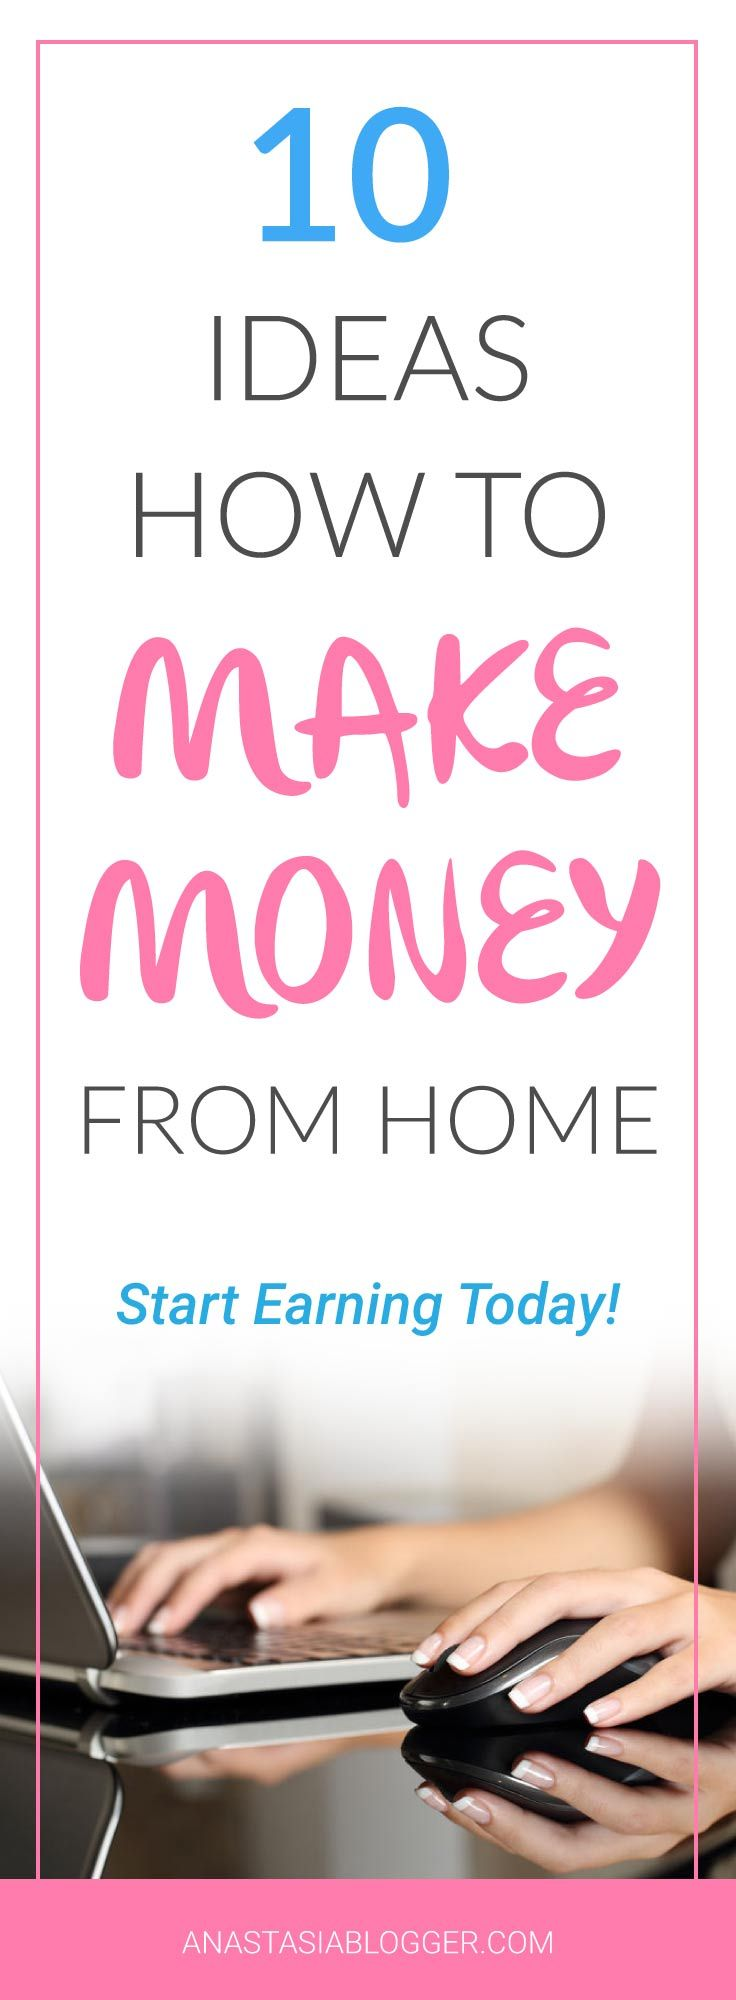 10 ideas how to make money from home - make money fast, make money online, make money ideas, make money blogging, as a virtuall assistant, via paid online surveys, earn money online in every possible way!